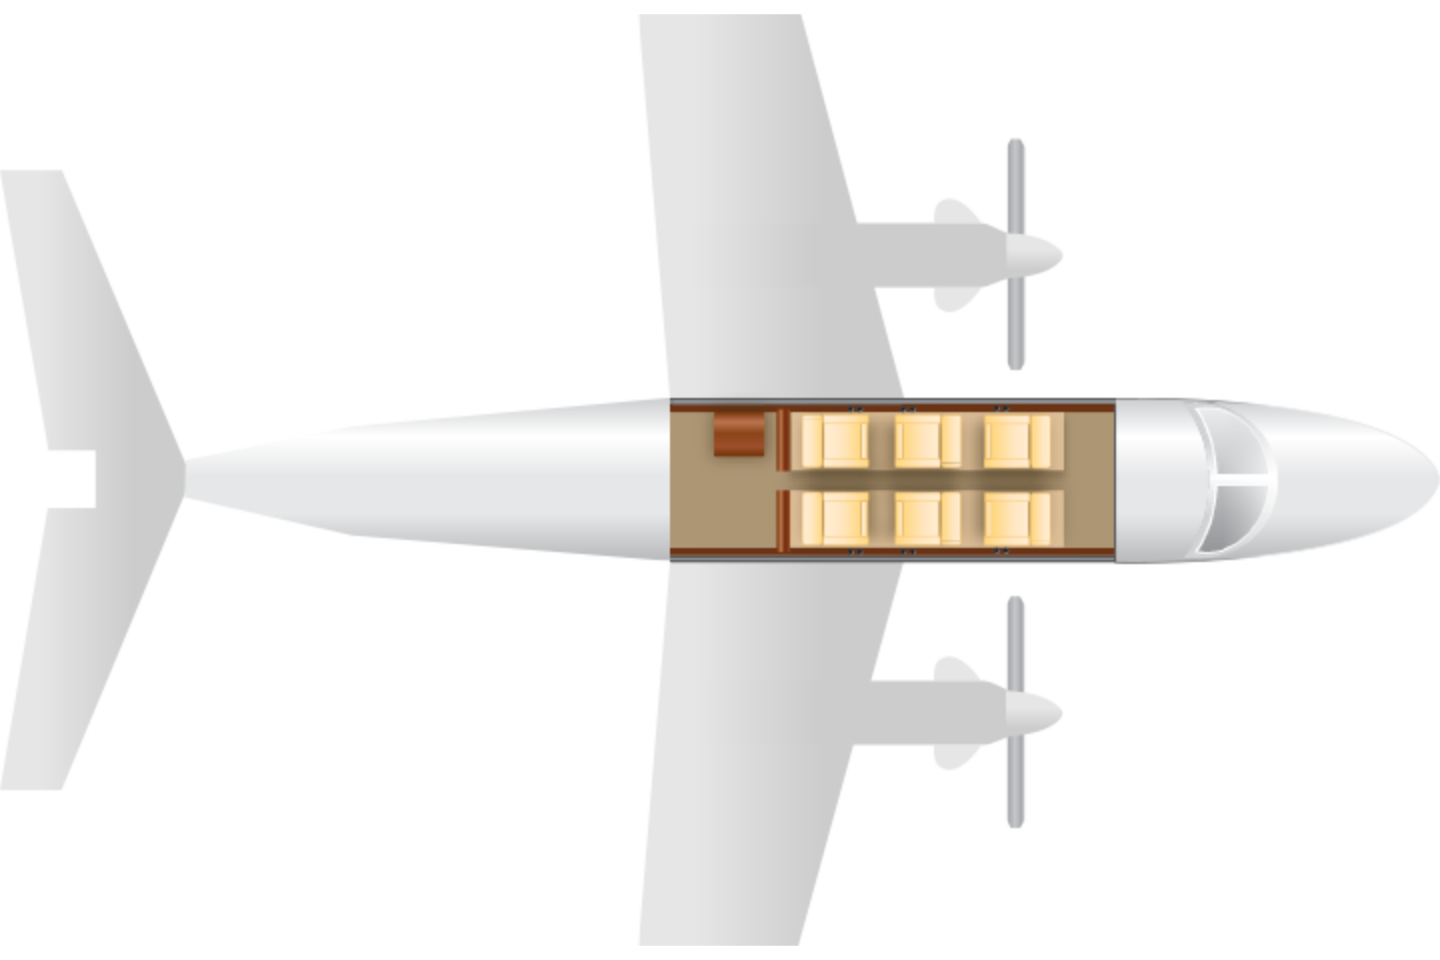 Private Turboprop King Air B200 Floor Plan